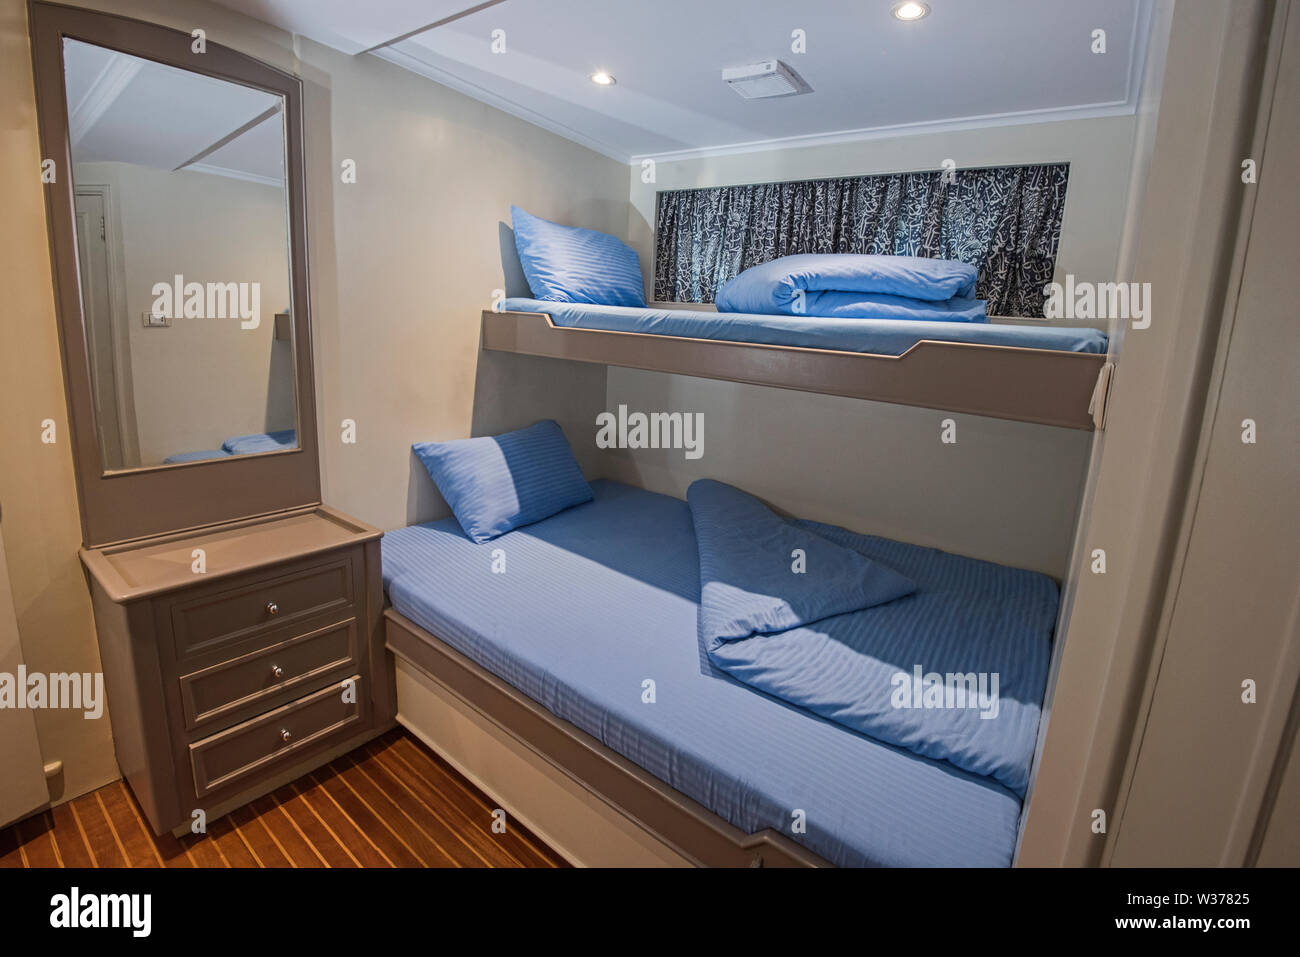 Bedroom Interior With Double Bunk Beds High Resolution Stock Photography And Images Alamy